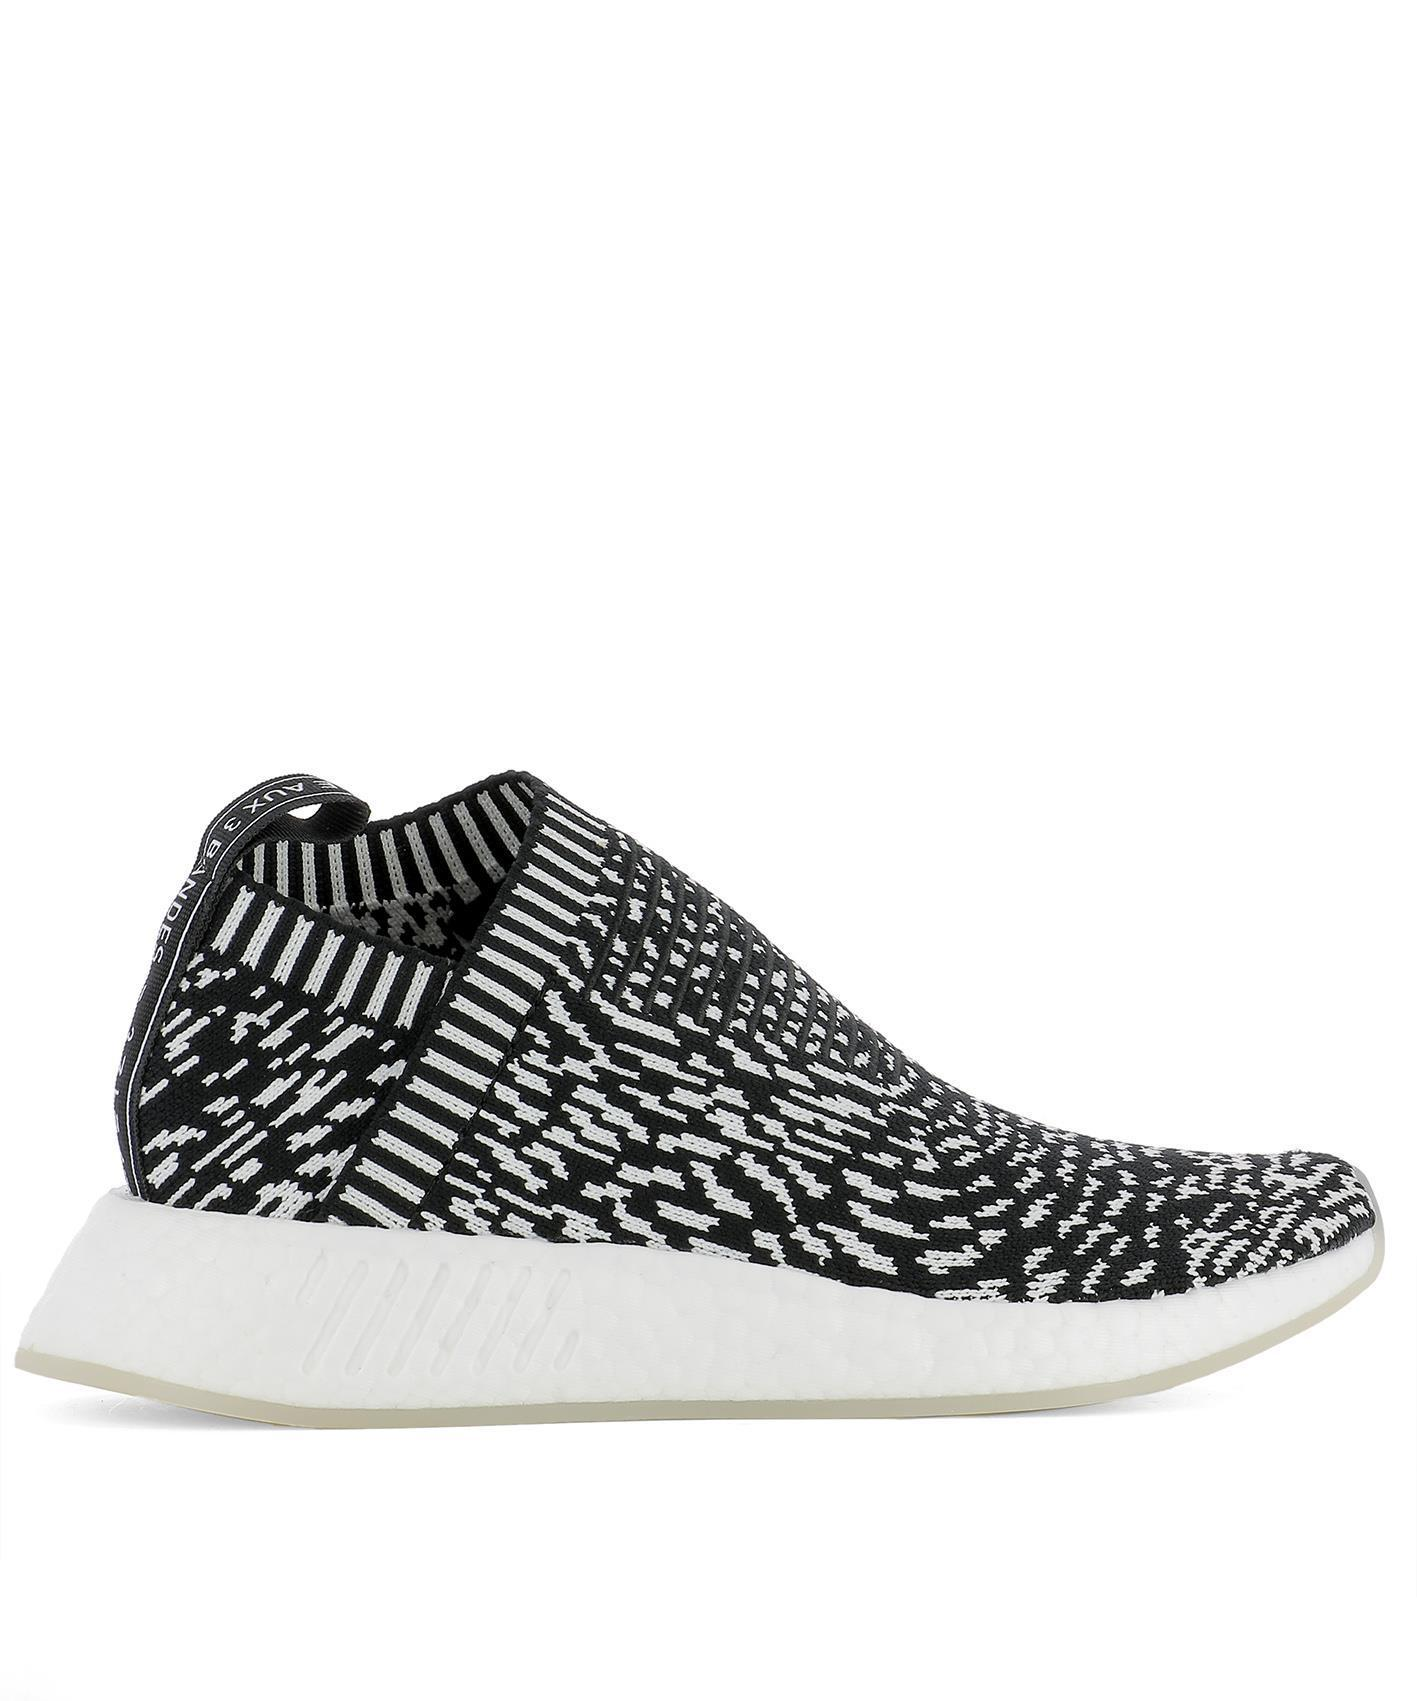 590e9b950fe6a Lyst - Adidas Originals Nmd Cs2 Primeknit Sneakers in Black for Men